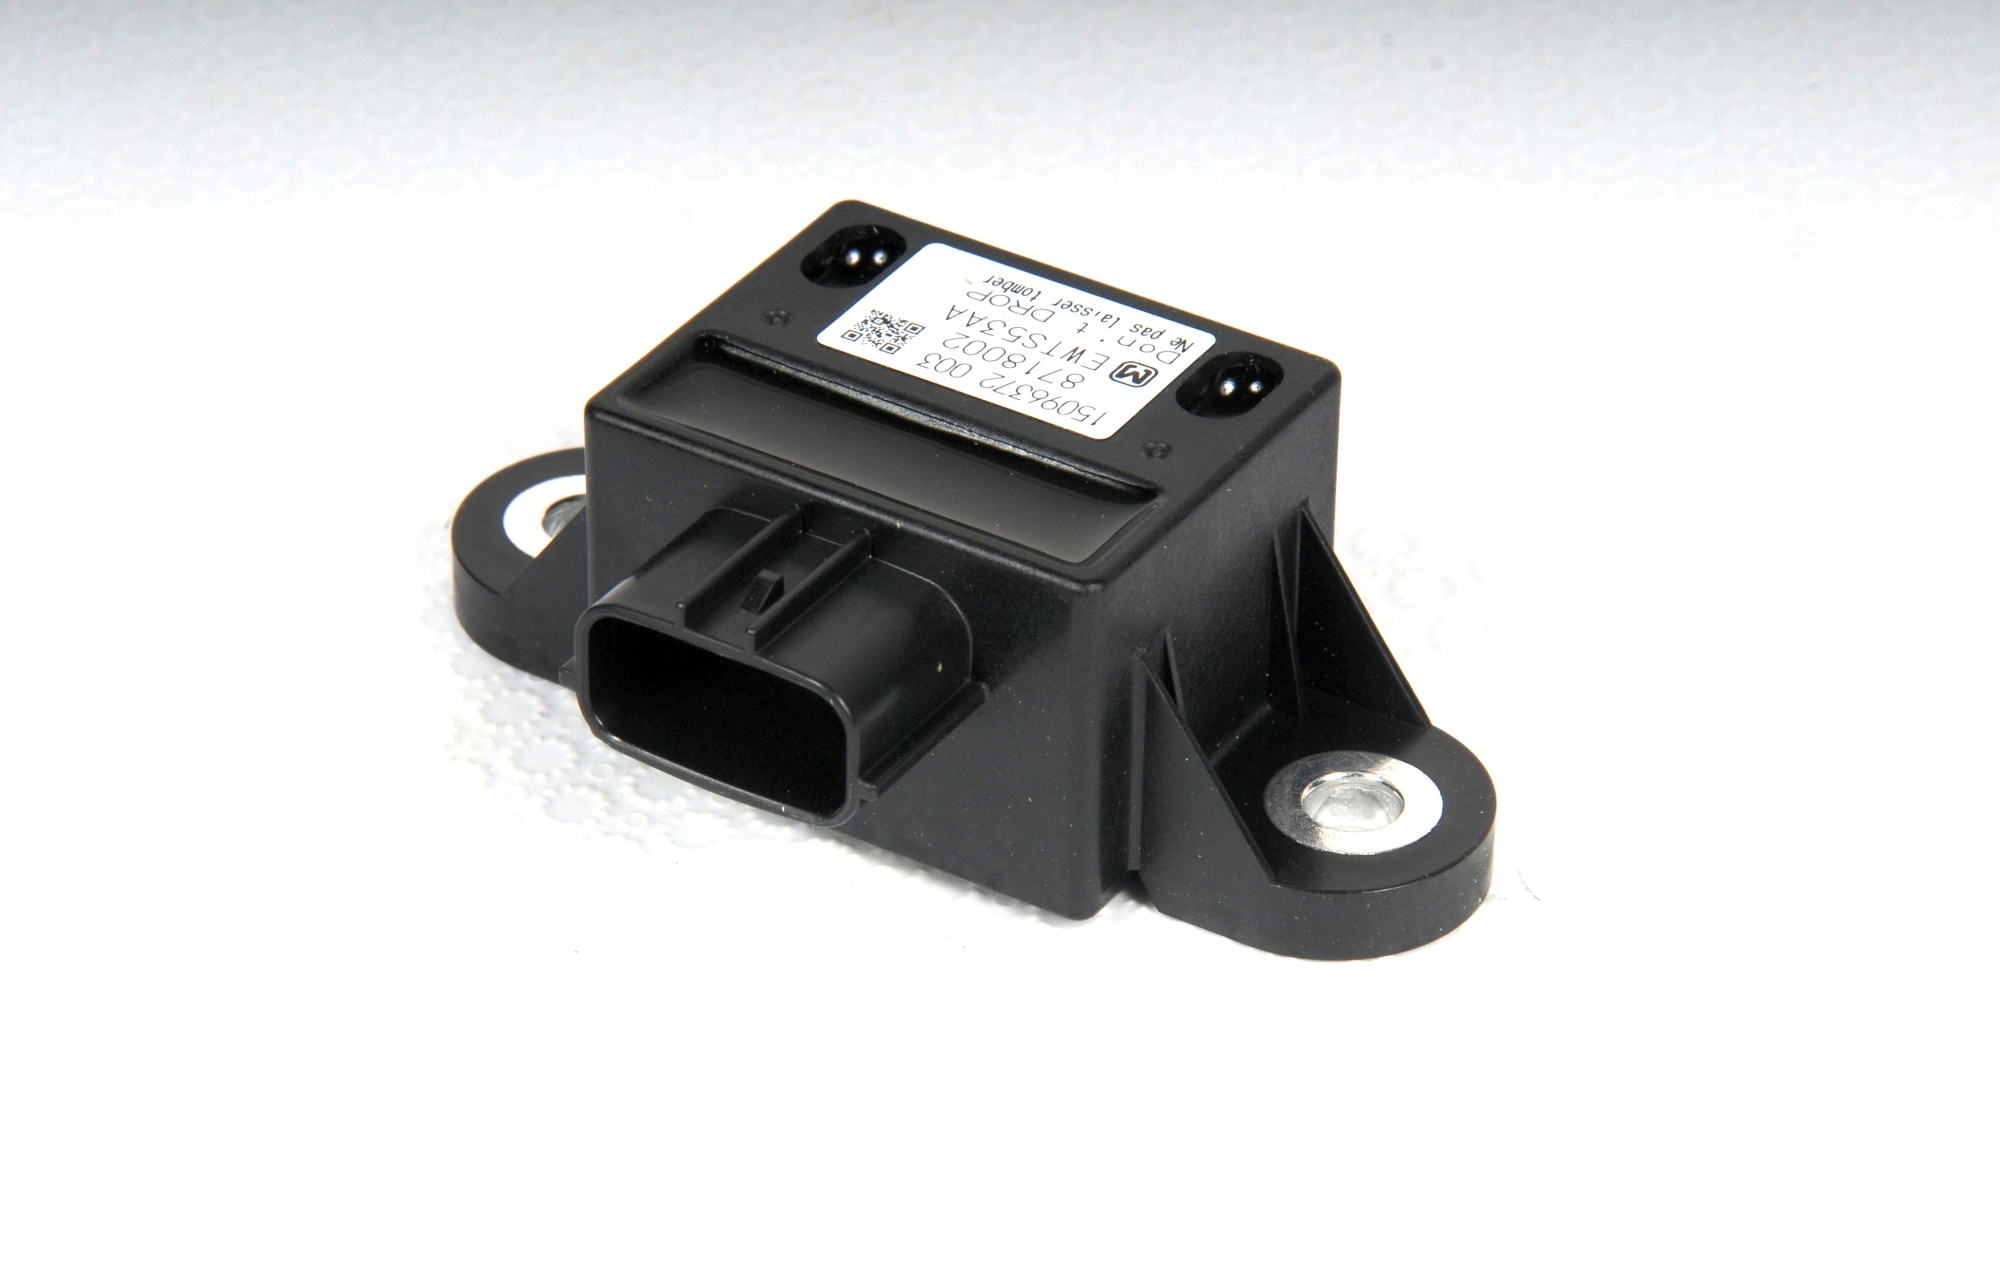 ACDELCO OE SERVICE - Elec Brk Cont Longtde/Lateral/Yaw Accelerometer - DCB 15096372